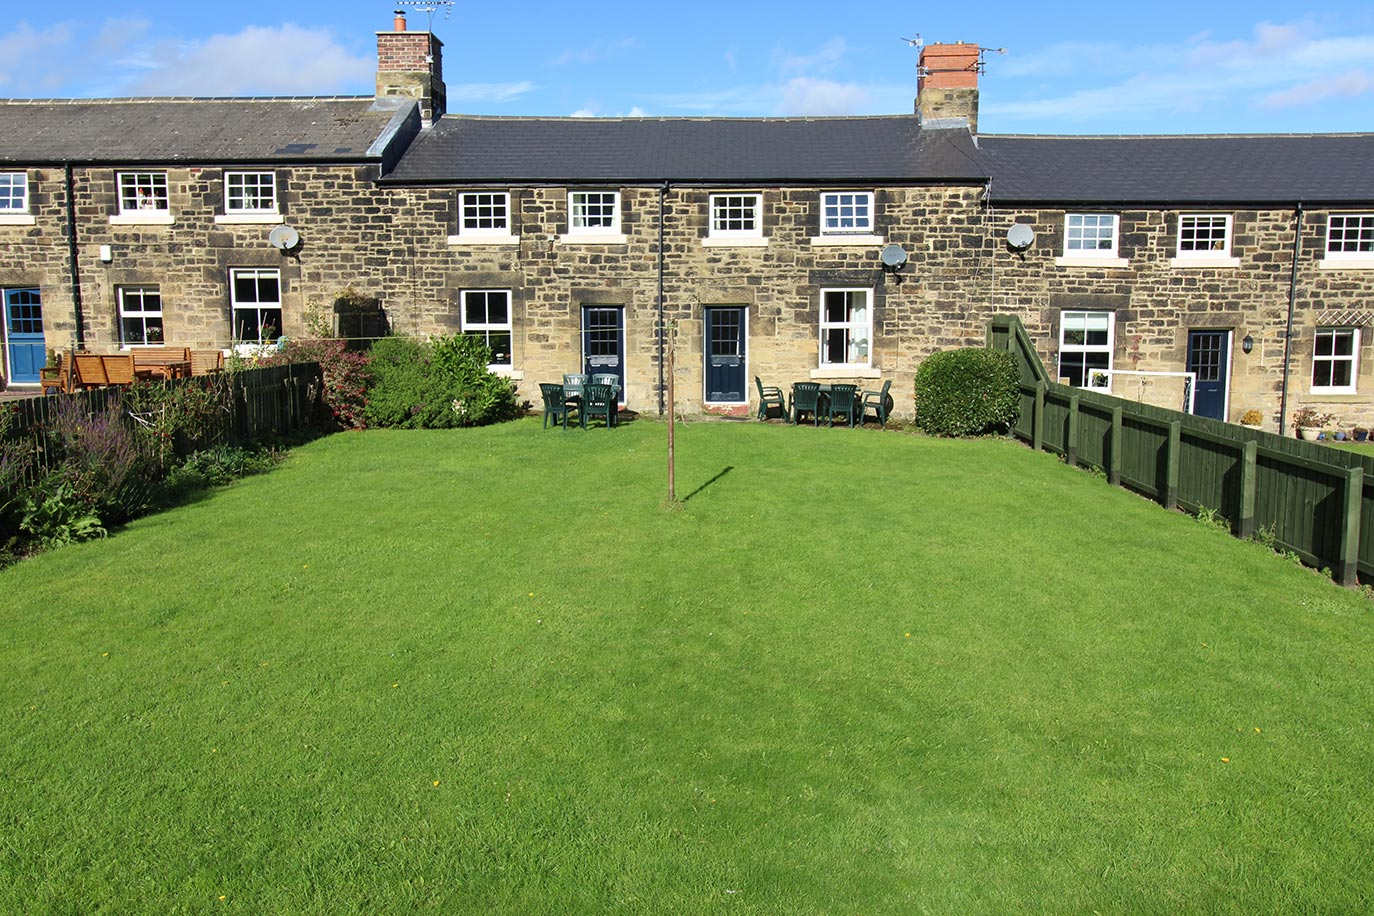 No 3 & No 4 Farm Cottage exterior | Burradon Farm Houses & Cottages